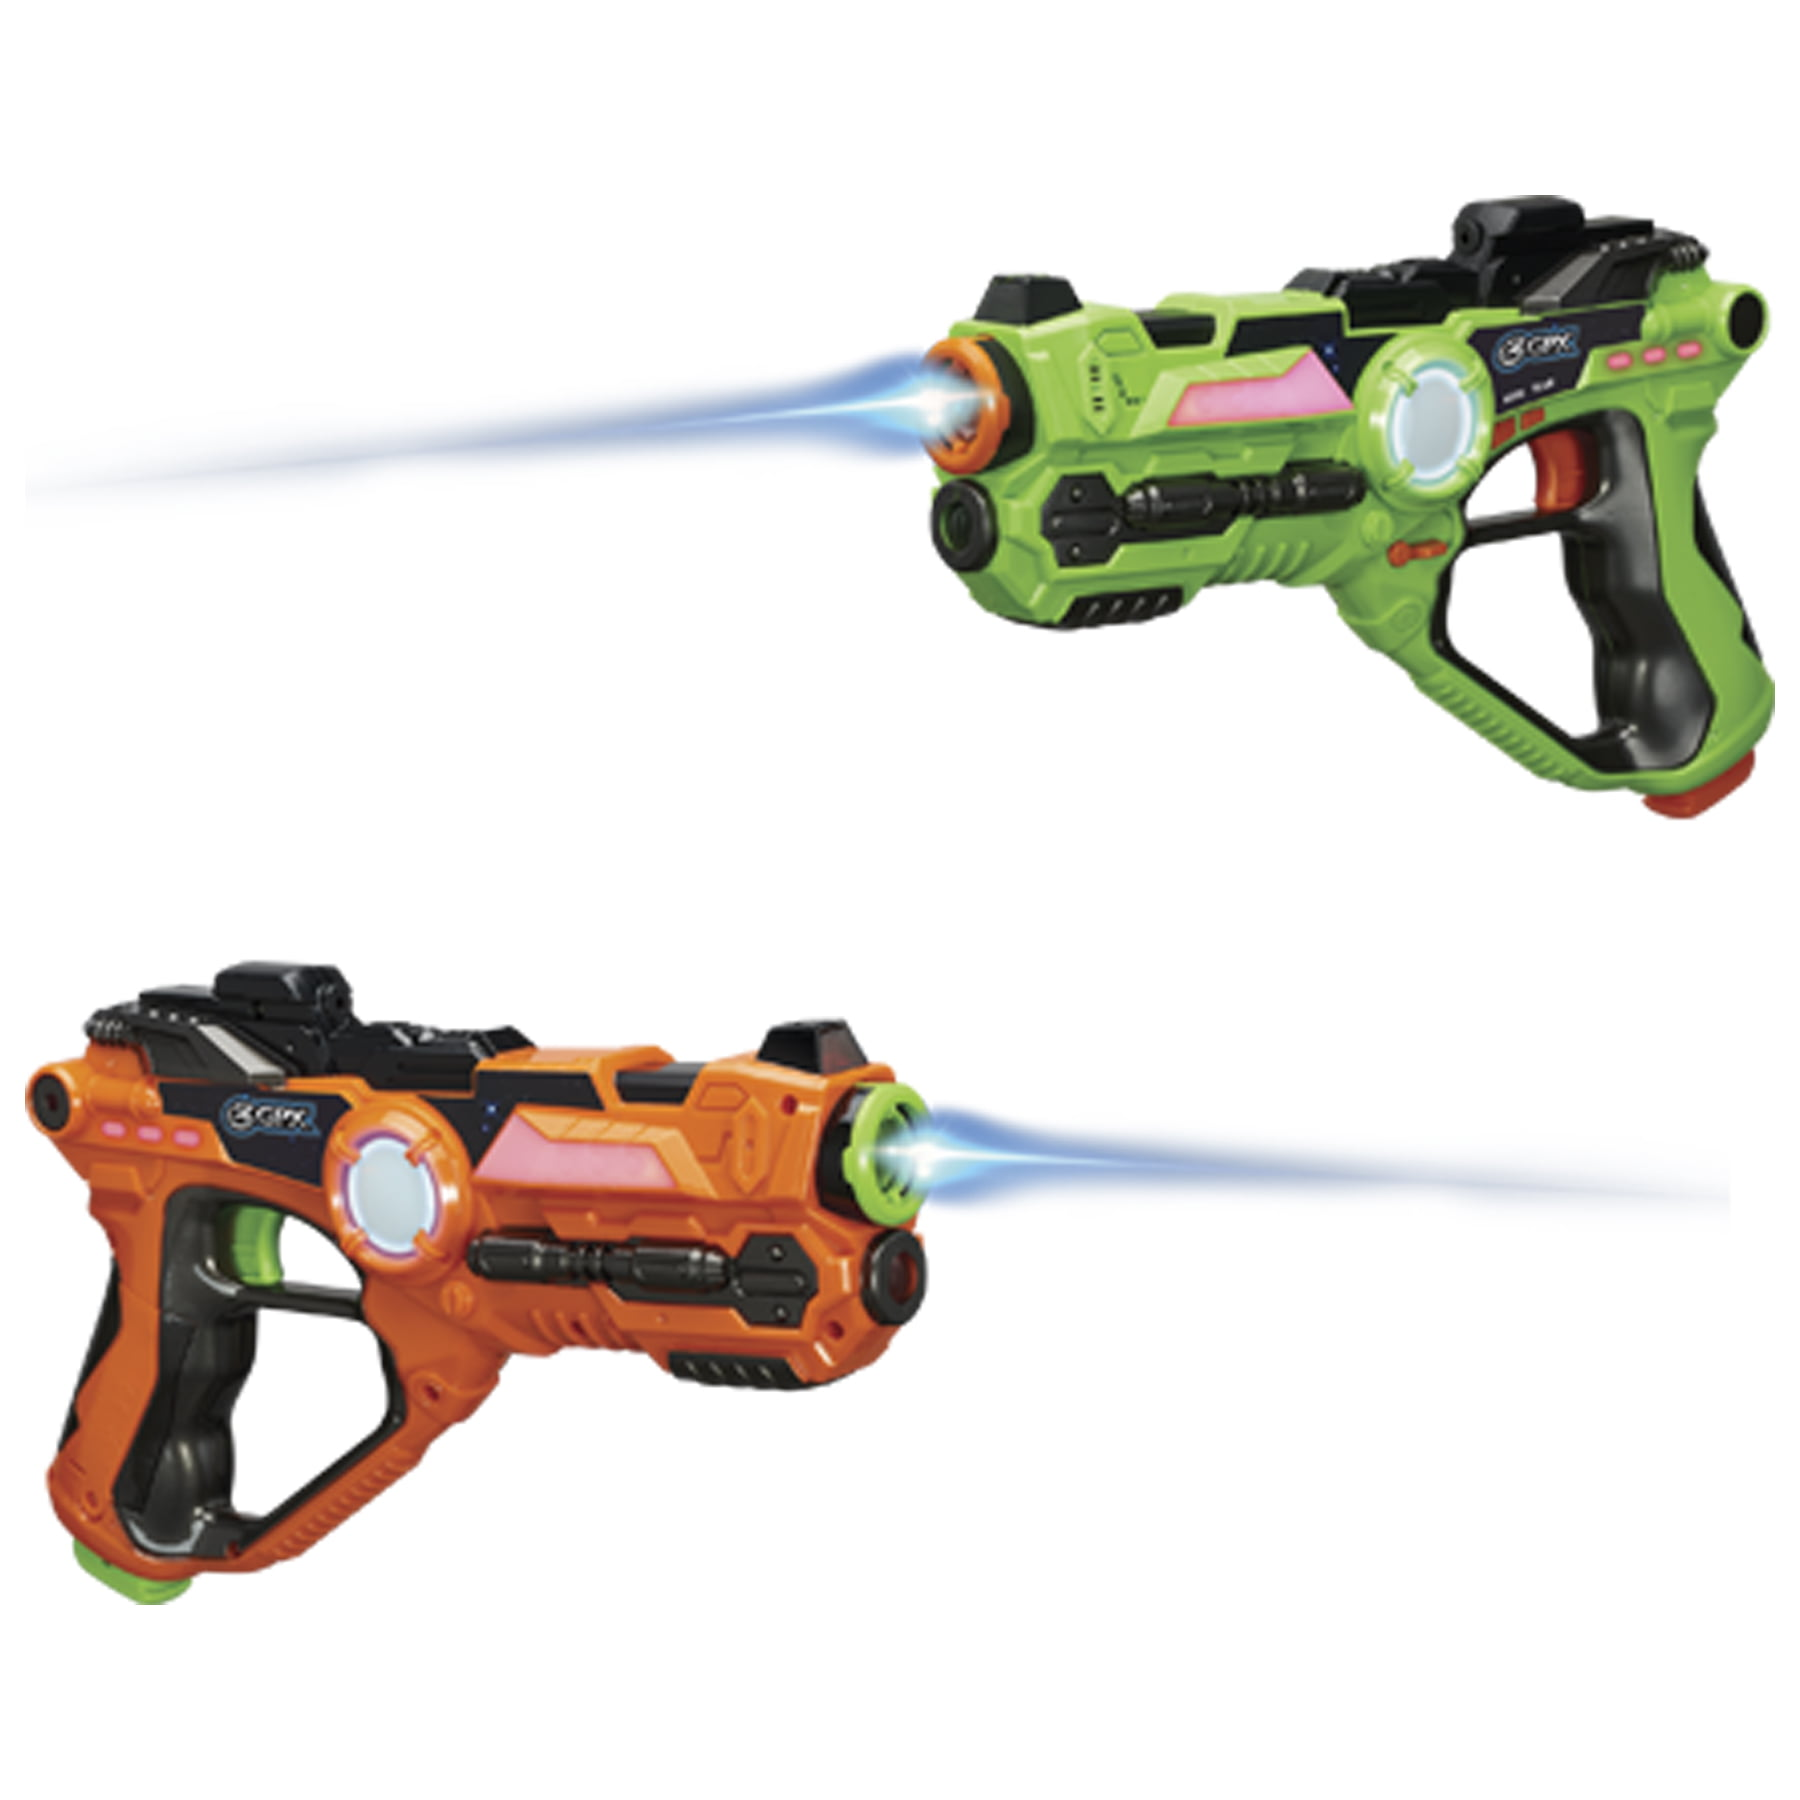 GPX Gen 1 Laser Tag Blaster, Set of 2, LT258